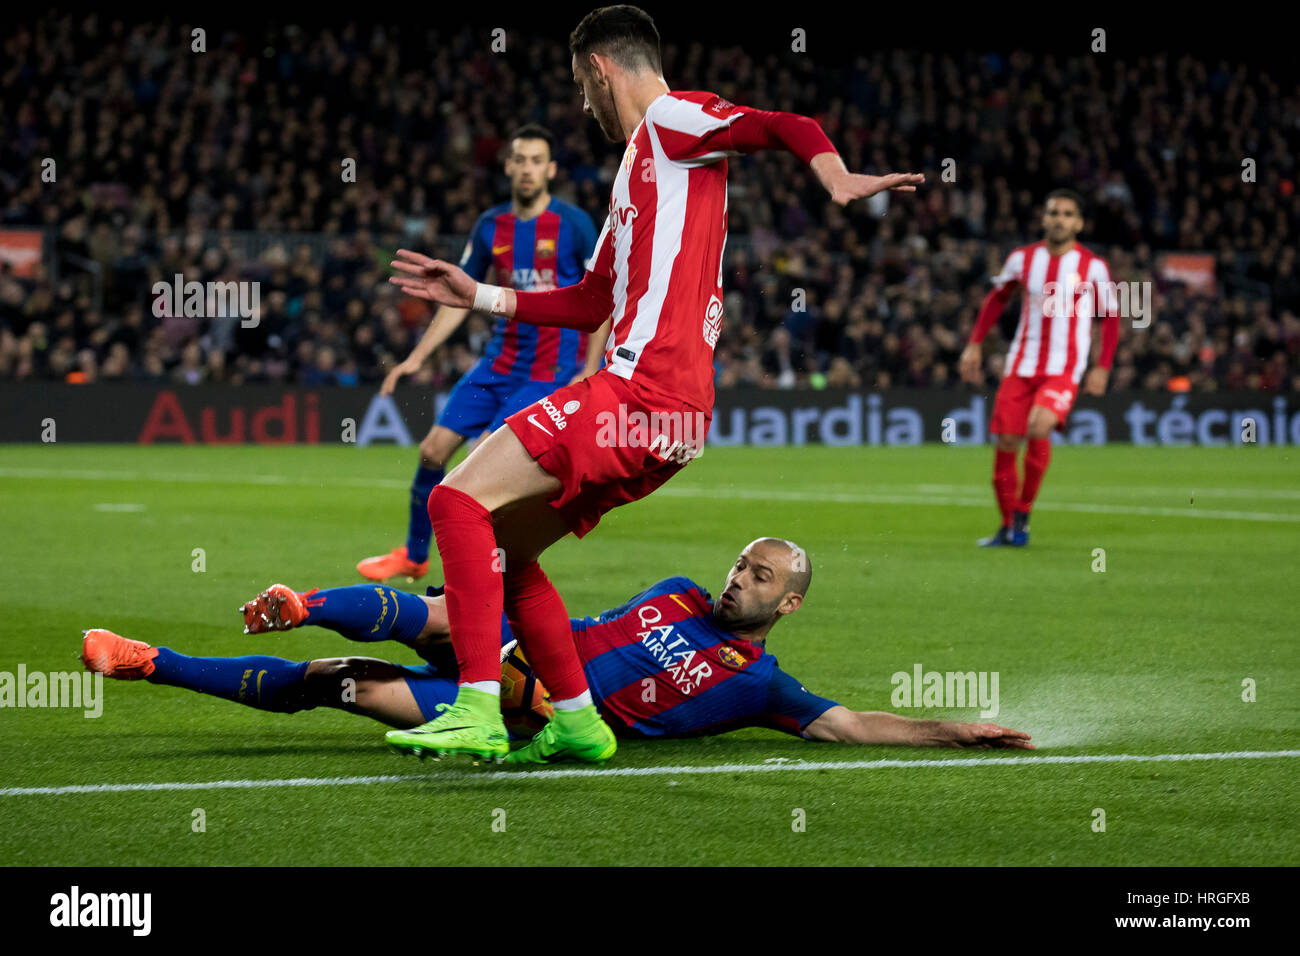 Camp Not Stadium, Barcelona, Spain. 1st March, 2017. Mascherano cuts the kick of Castro at the box at Camp Nou Stadium, - Stock Image